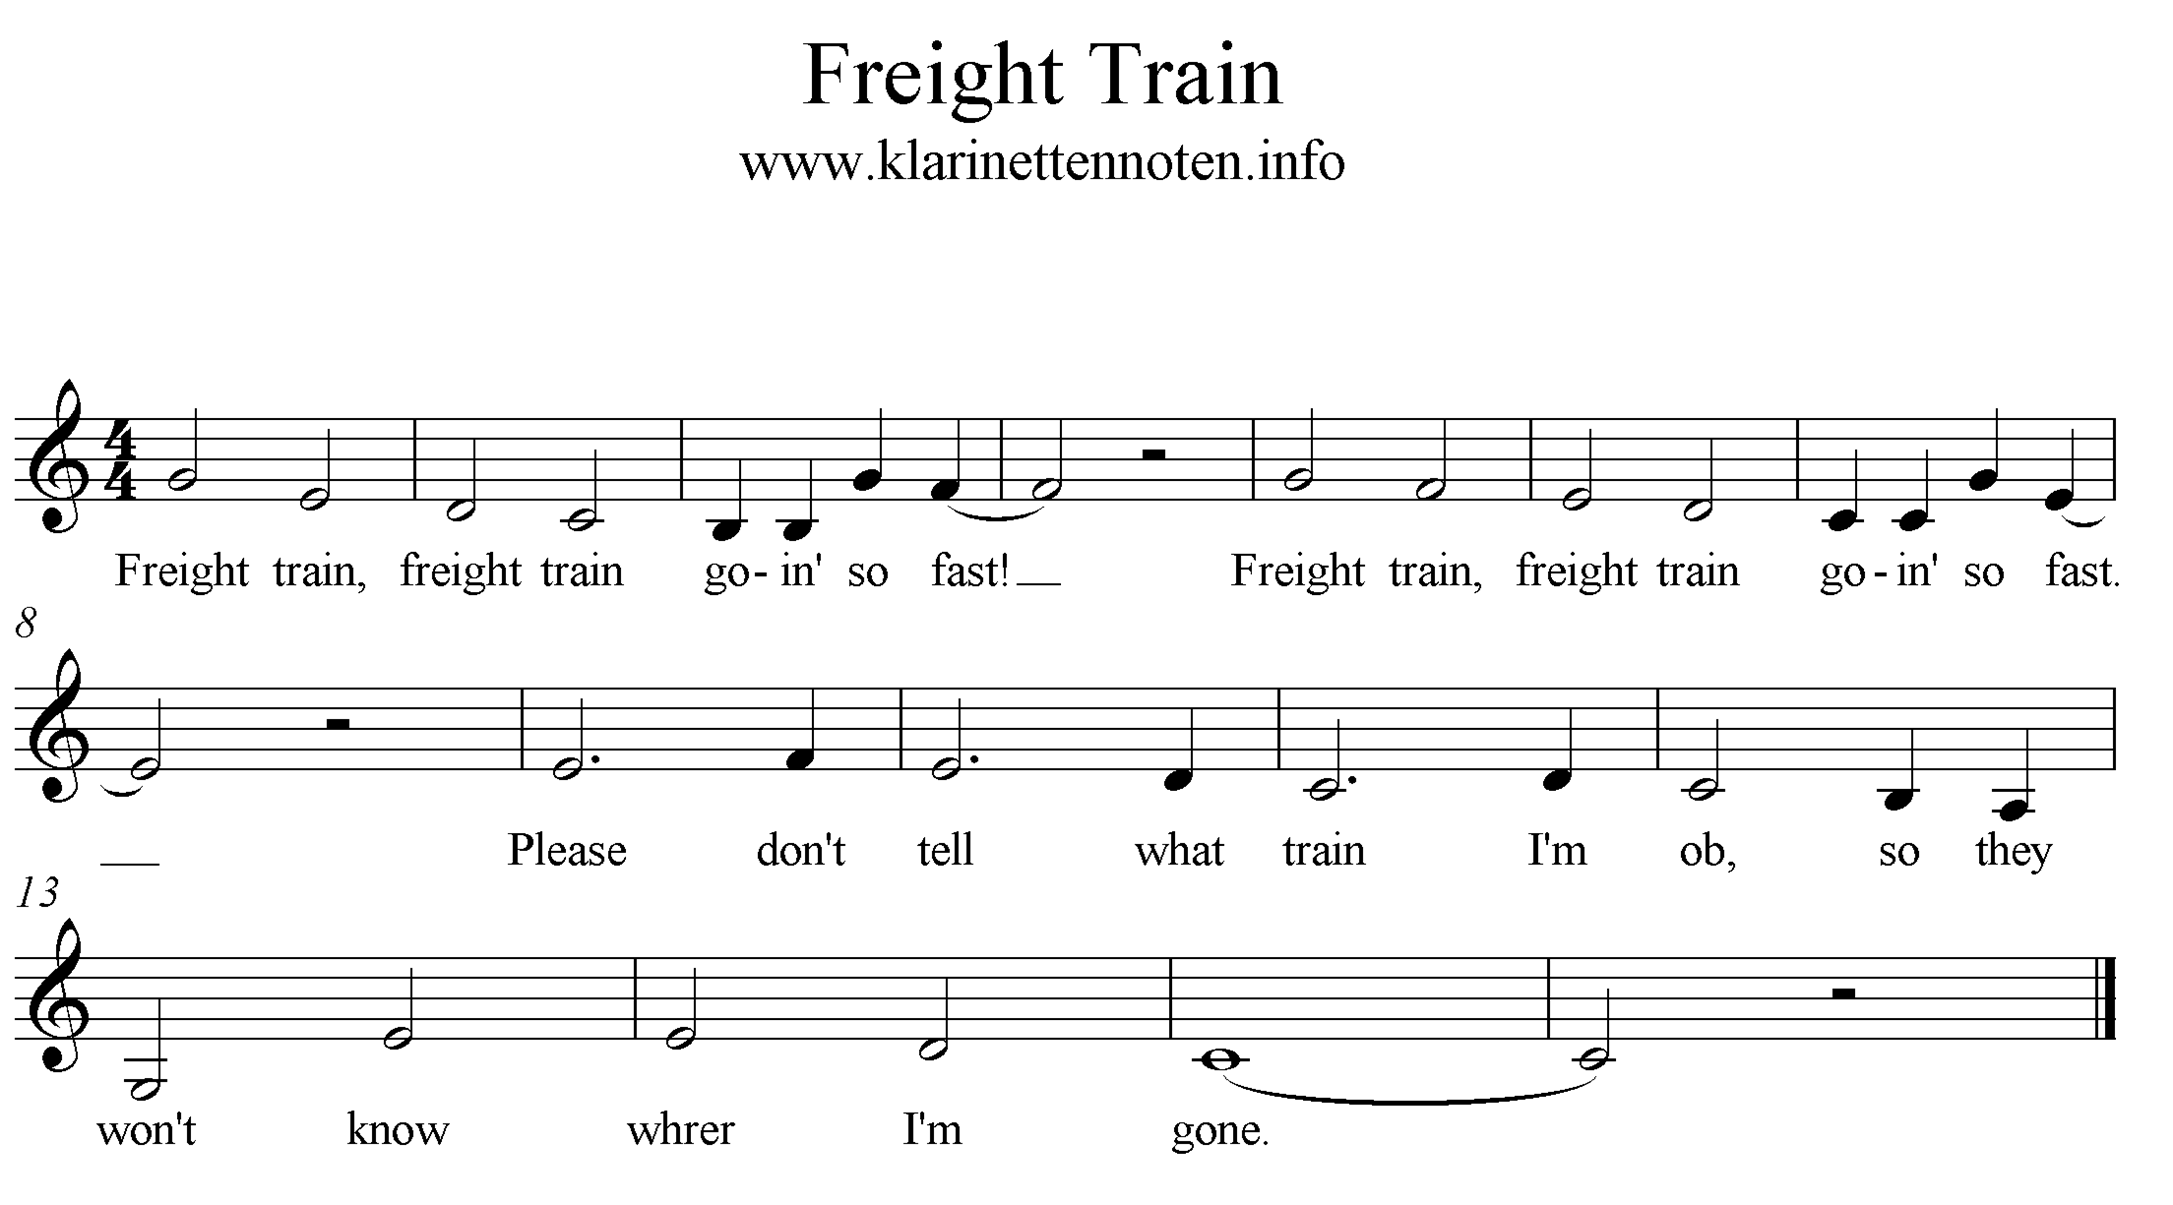 Freight Train freesheet music